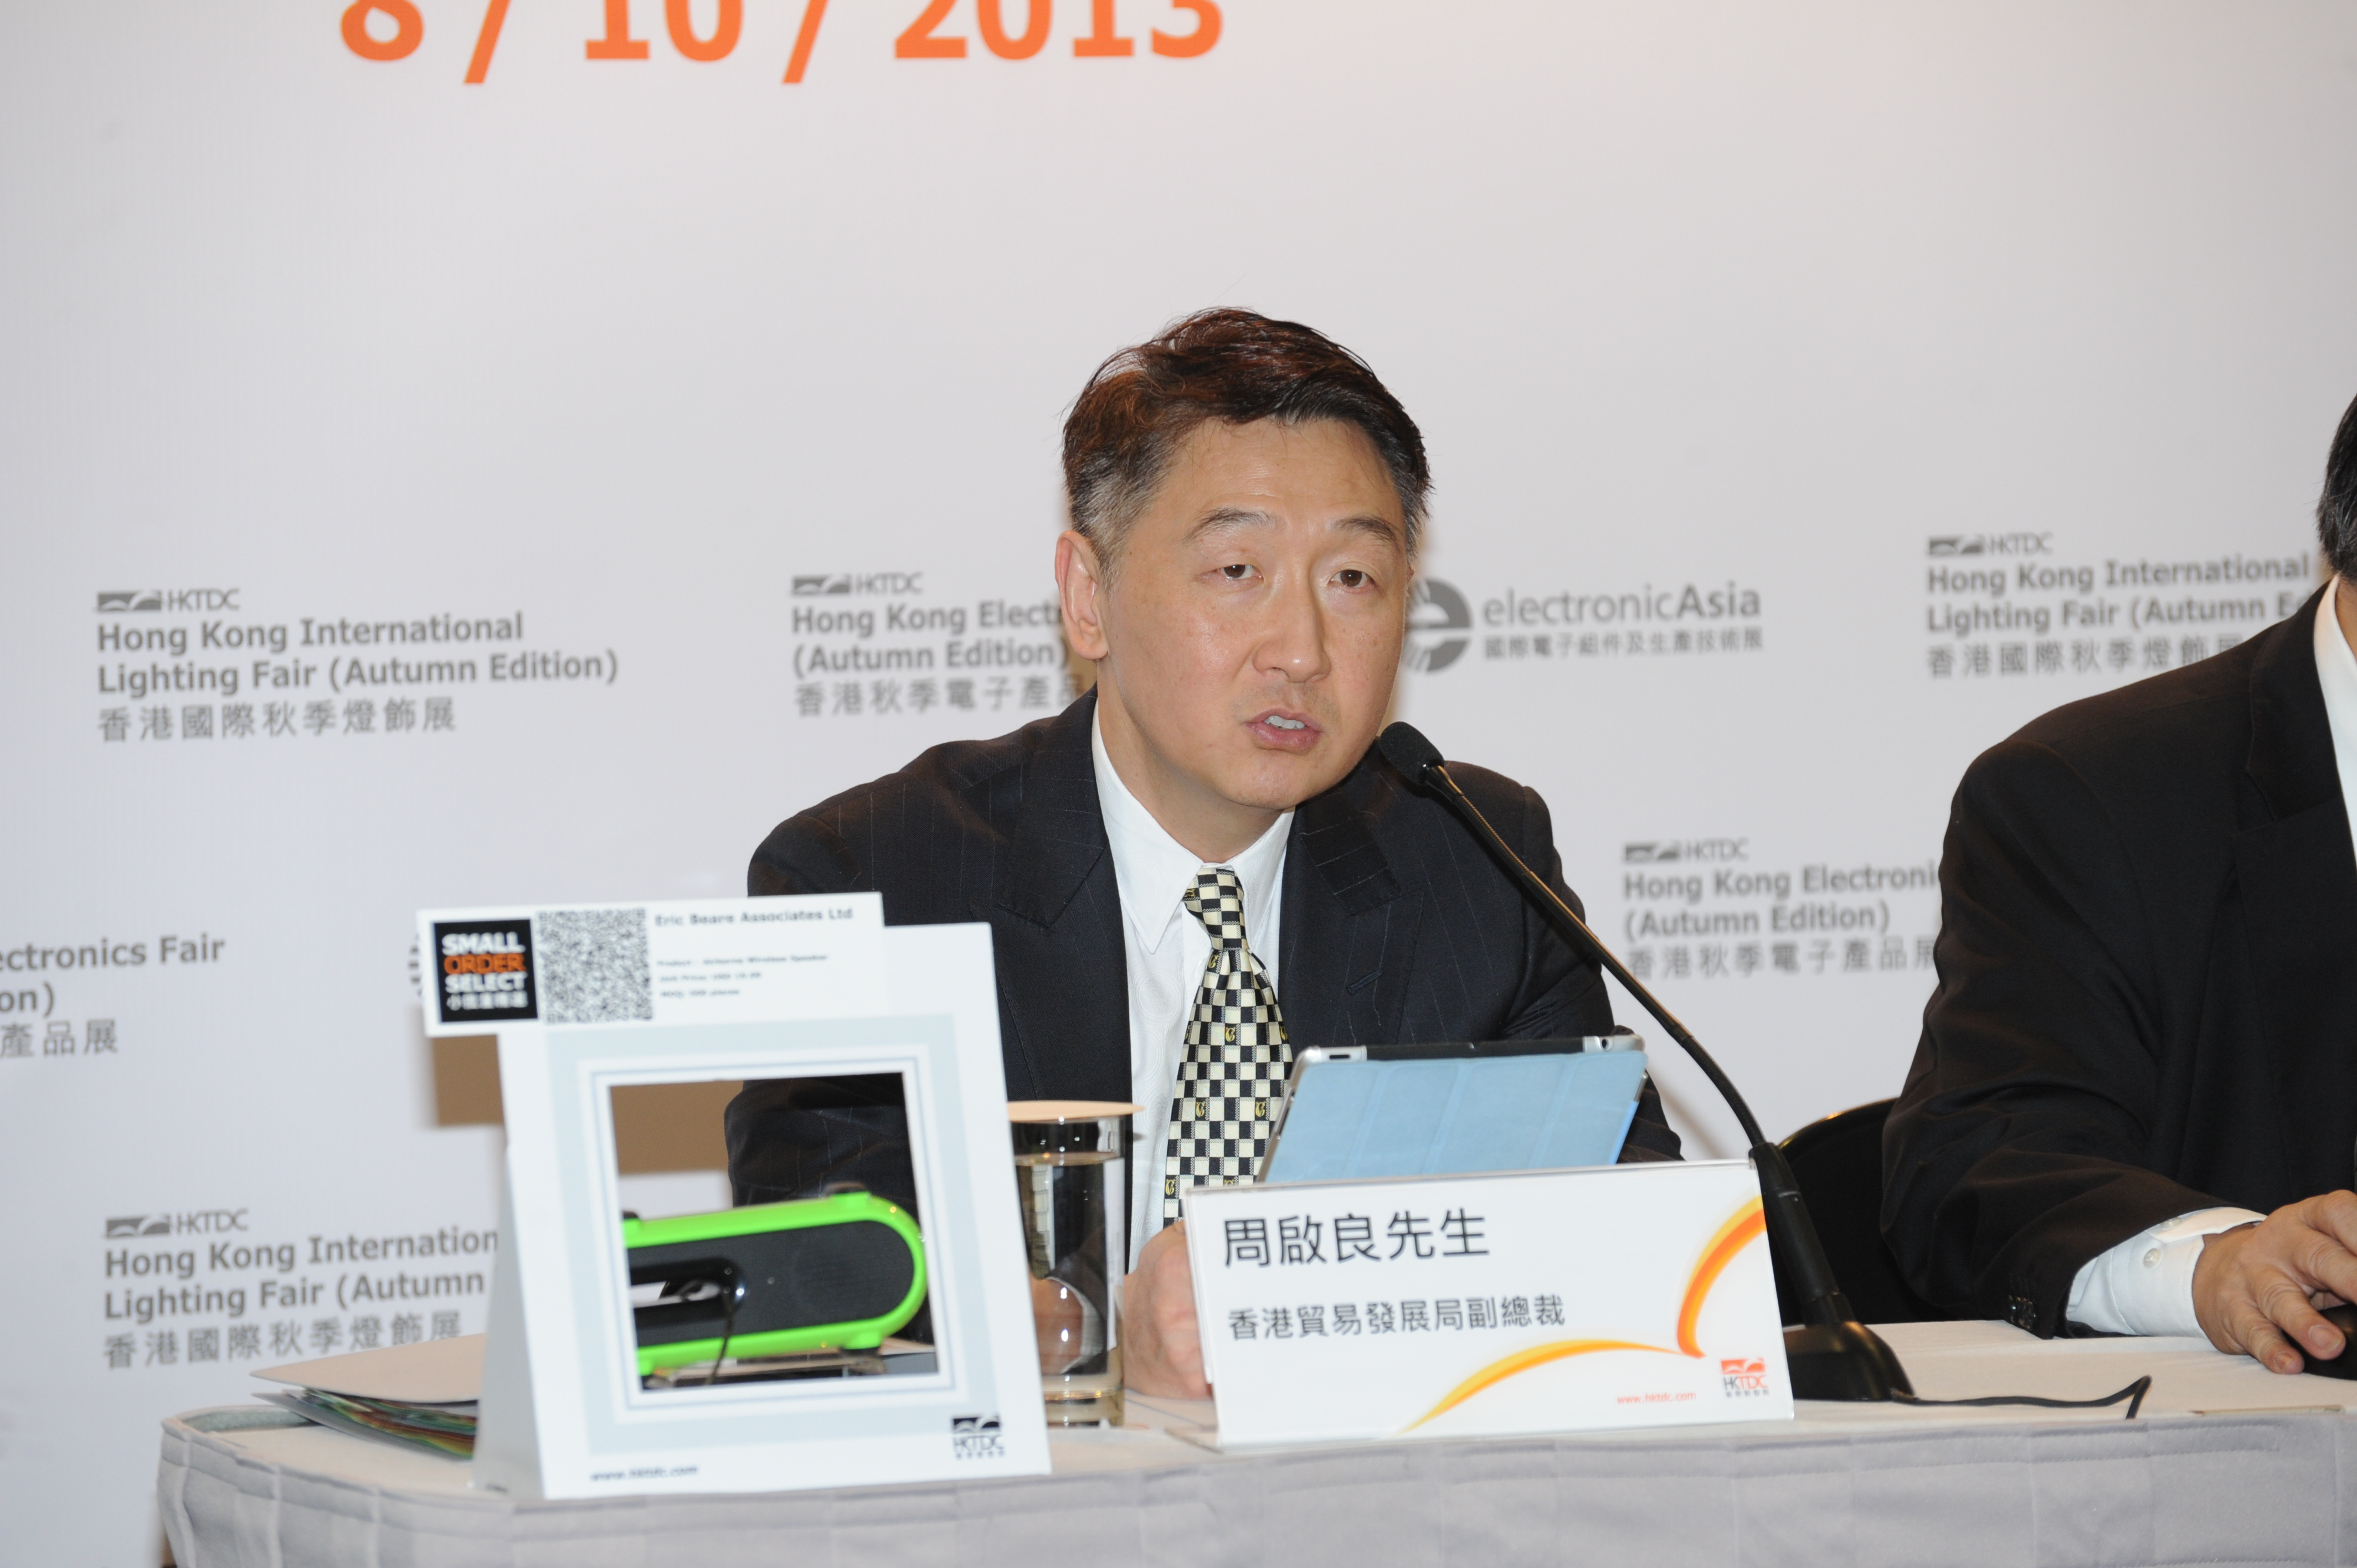 hktdccom New Product Zones to Highlight Worlds Top Electronics